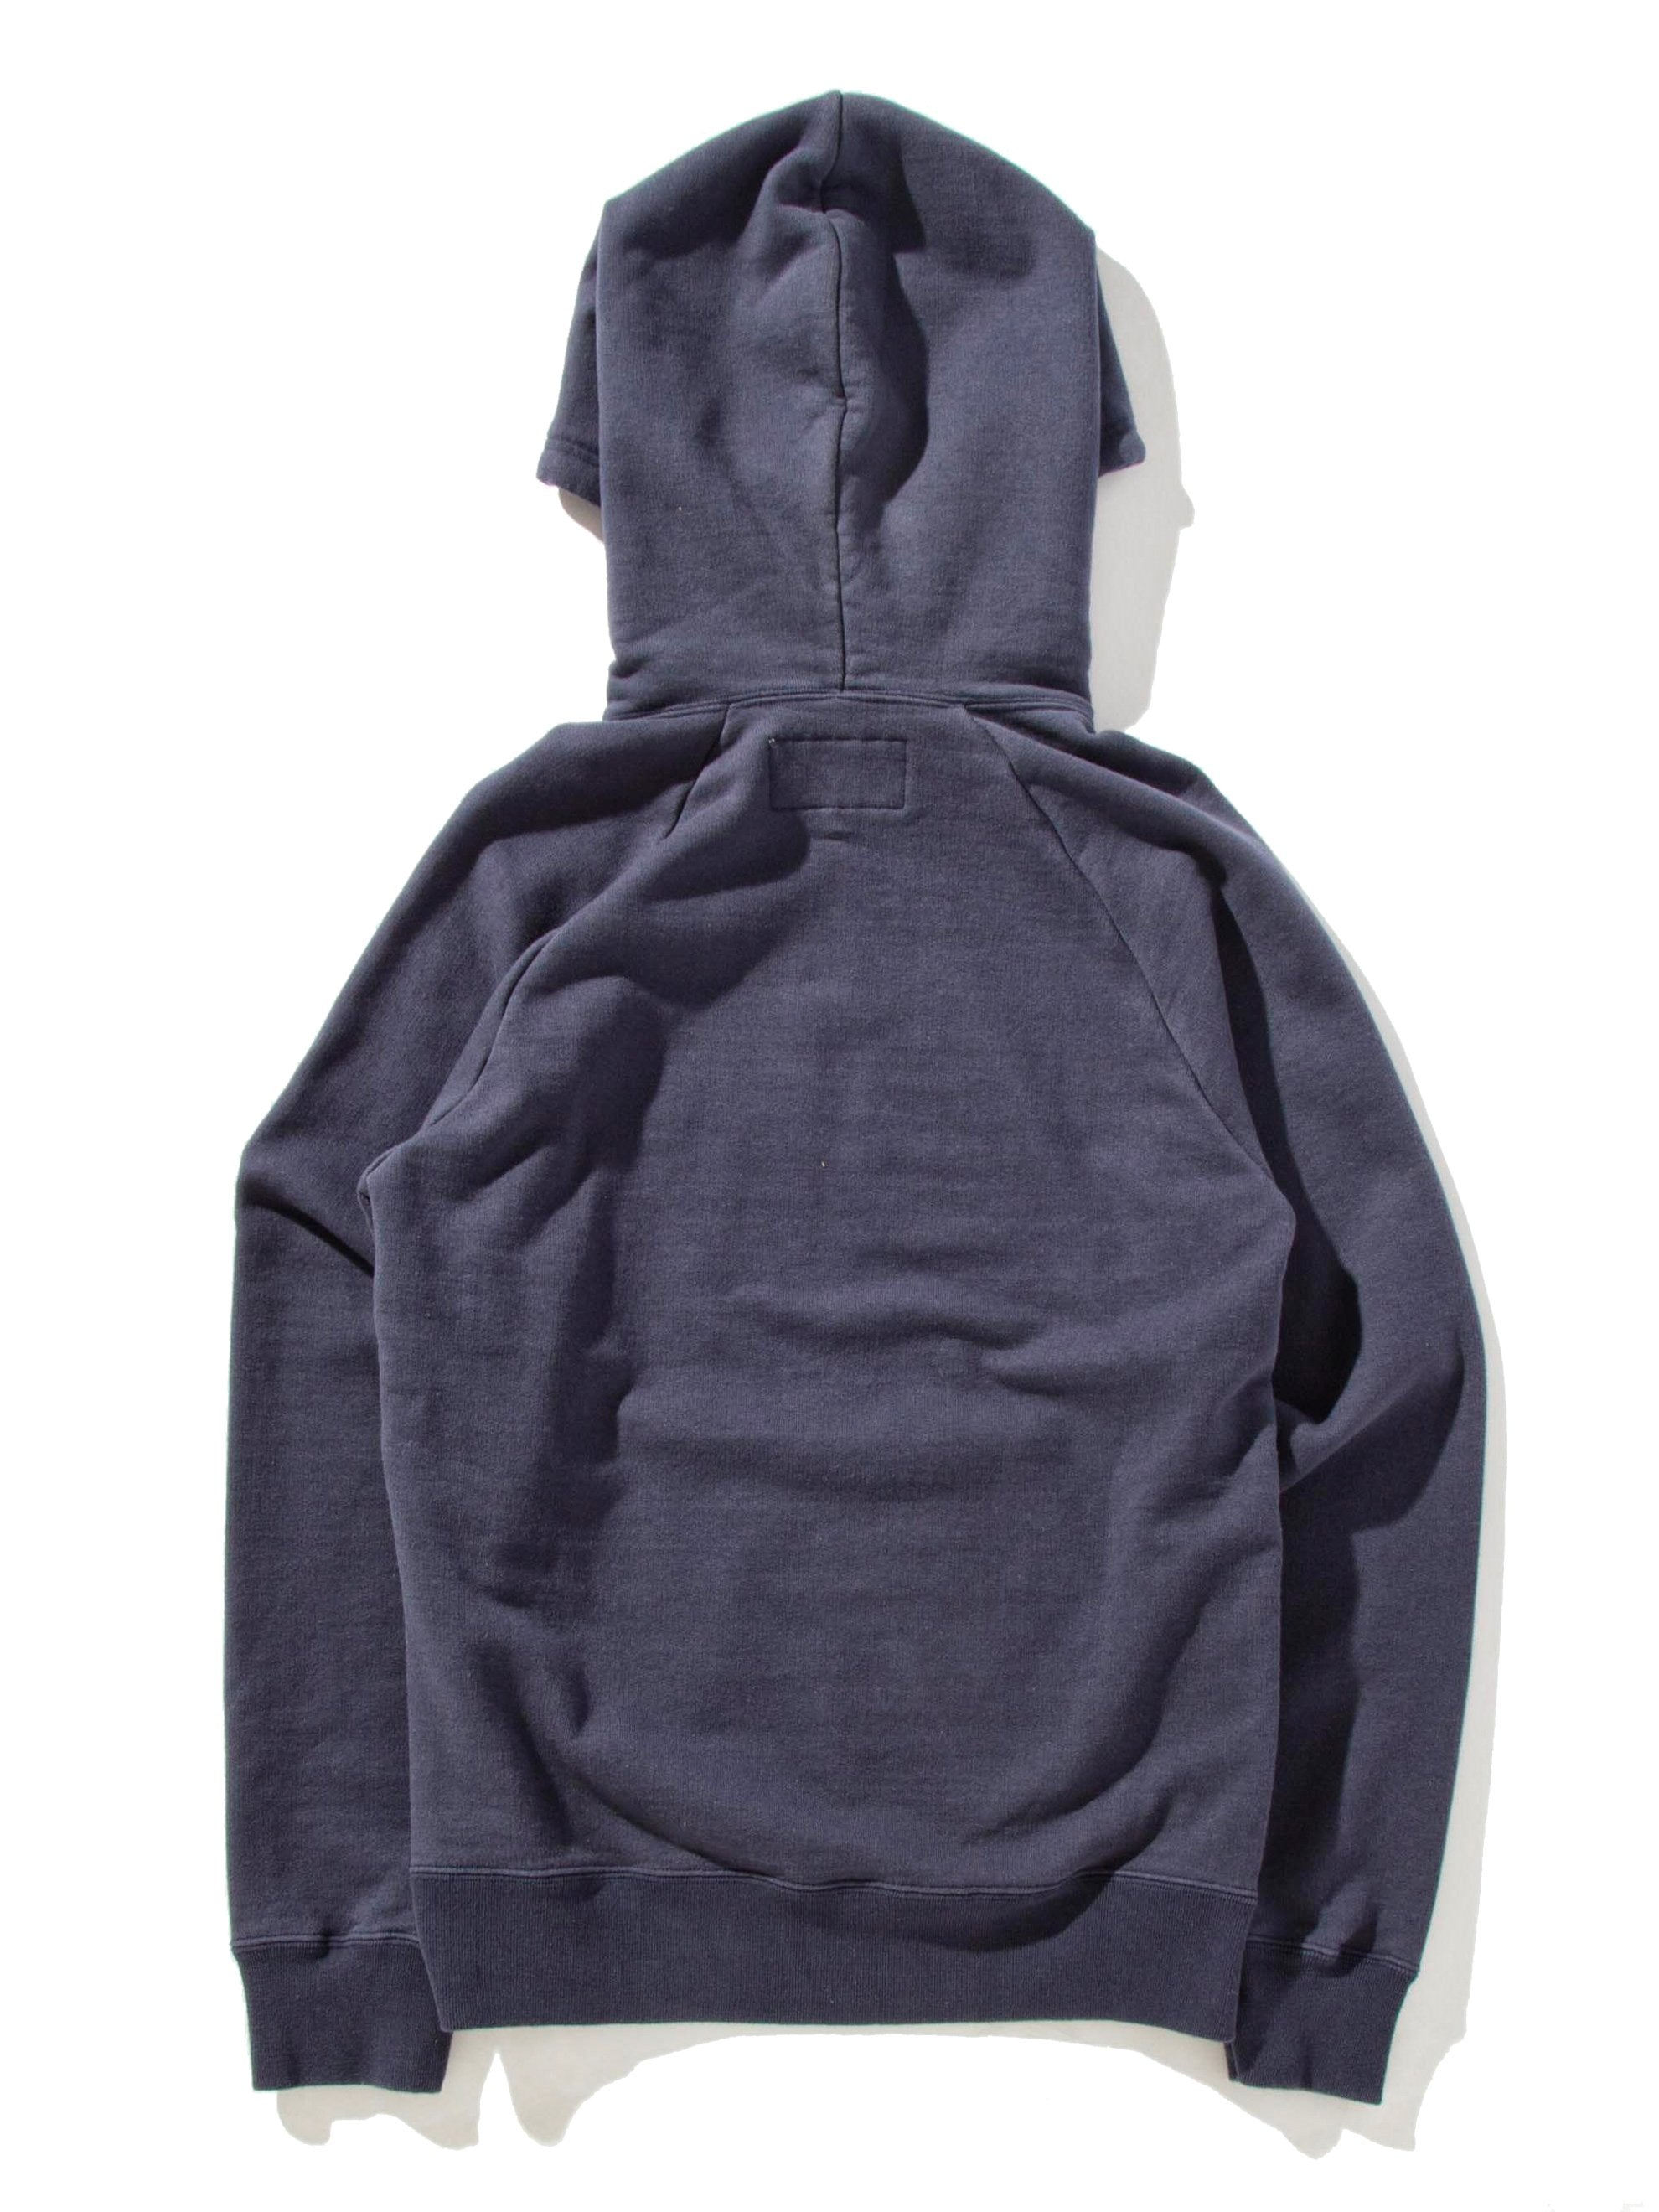 Navy Washed Heavy Weight Pullover Hooded Sweatshirt (Type-3) 10